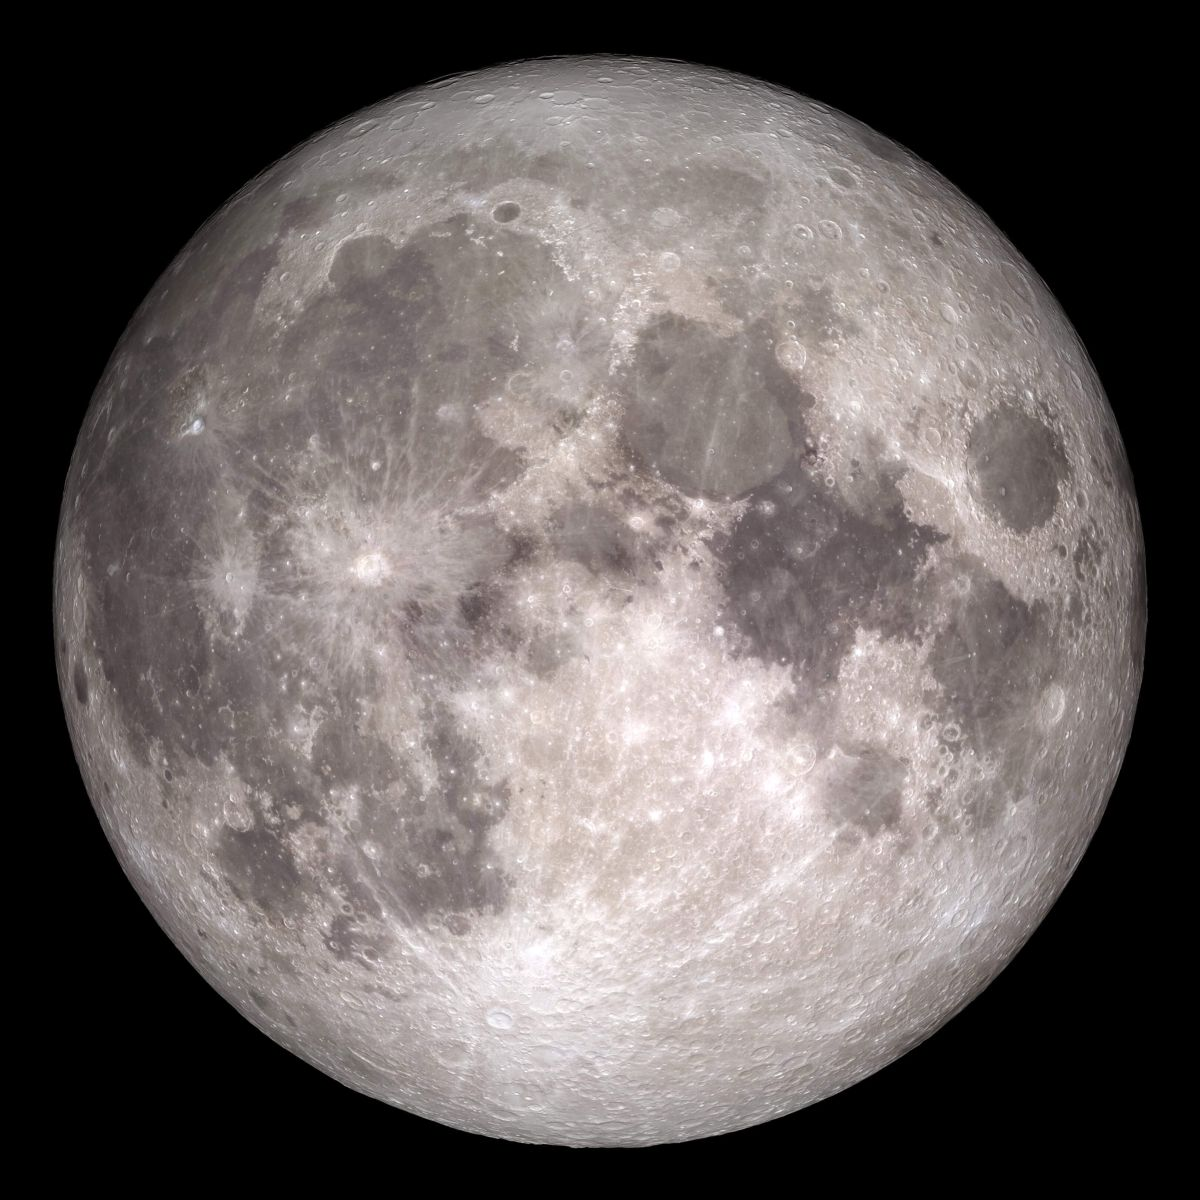 There's more metal on the moon than we thought